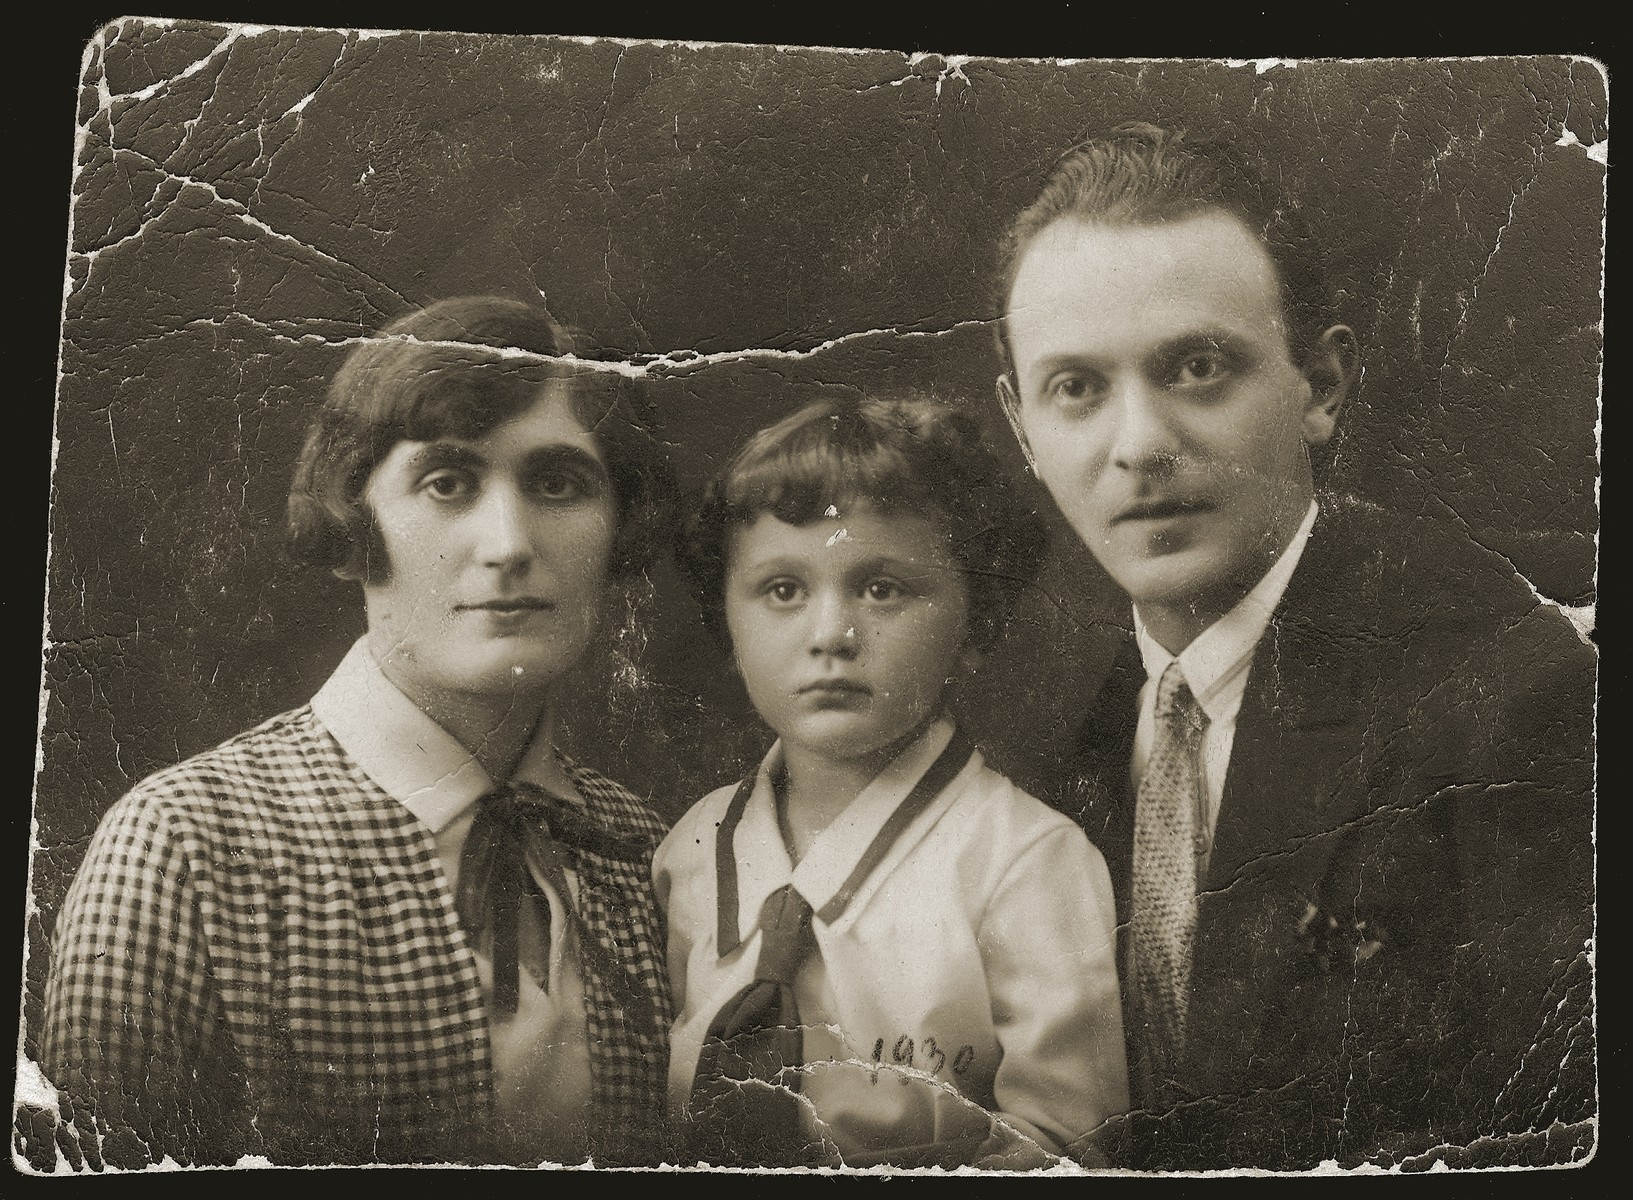 Szmuel and Lonia Liwer with their son Salek.